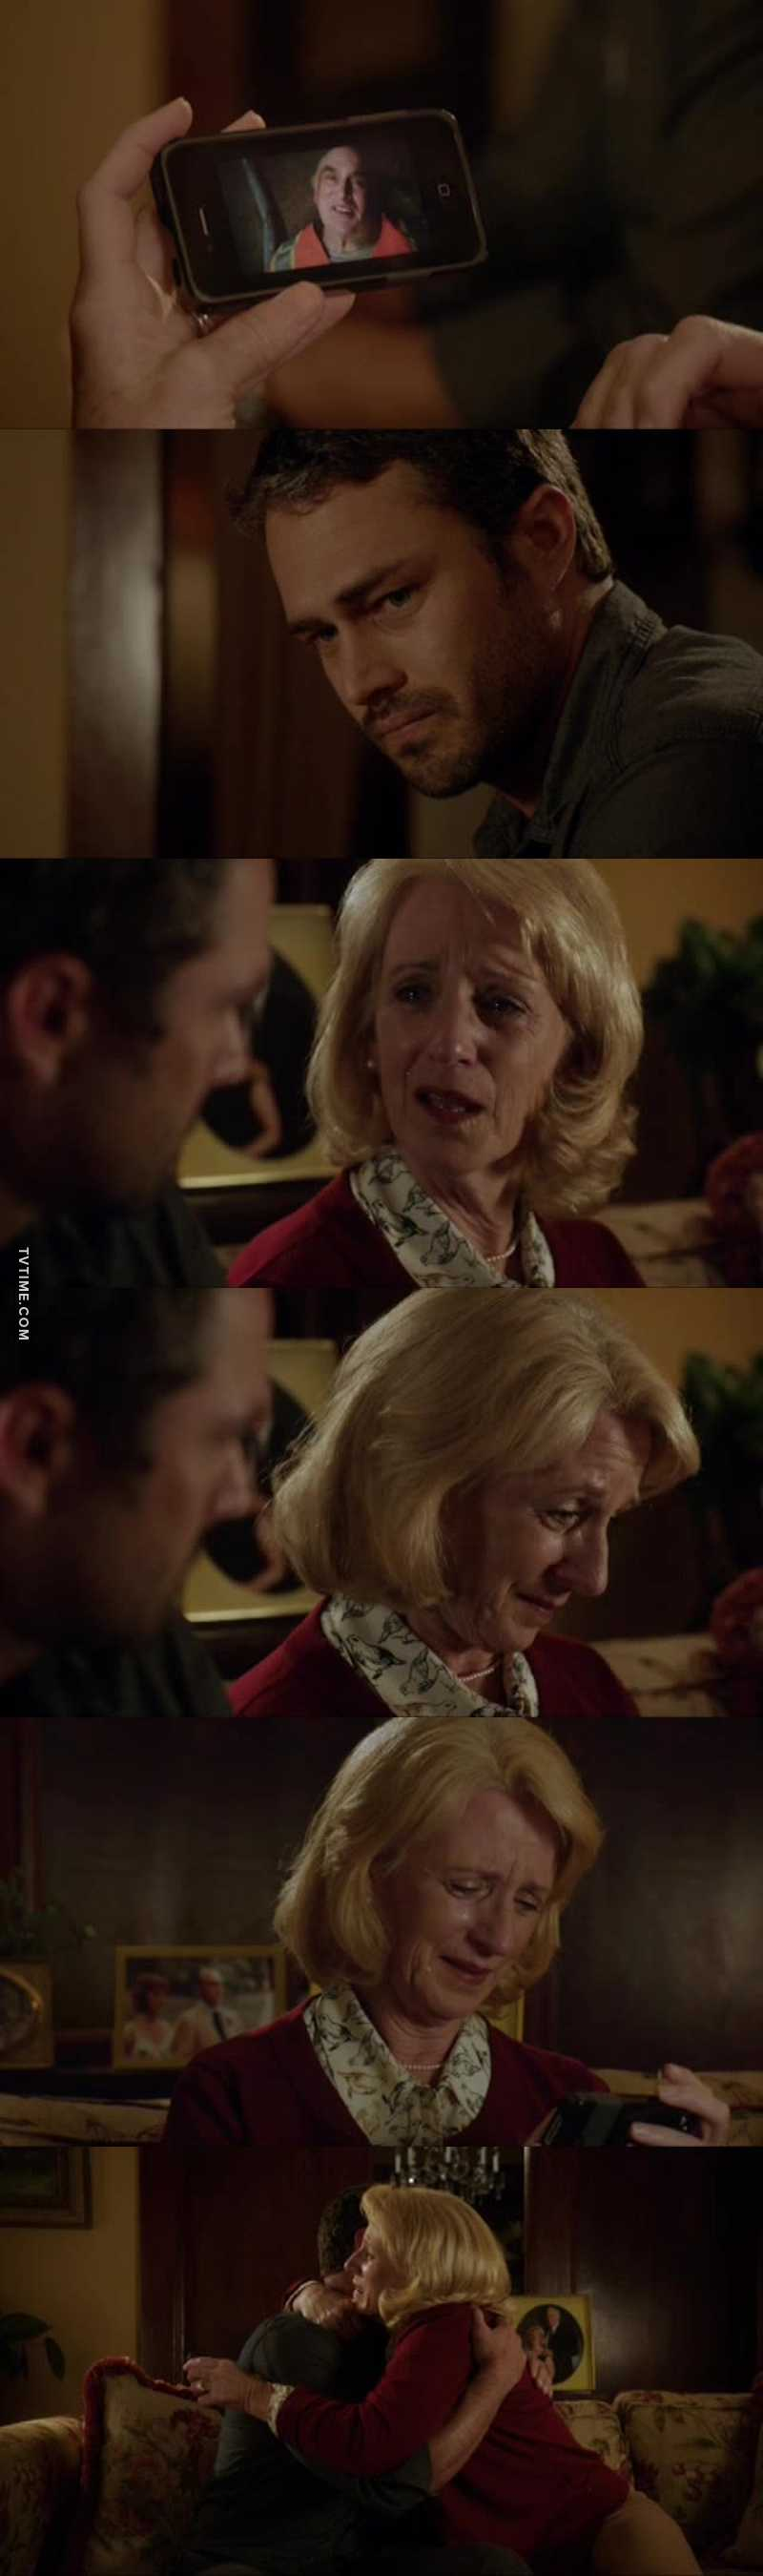 Really great episode and really emotional scene.